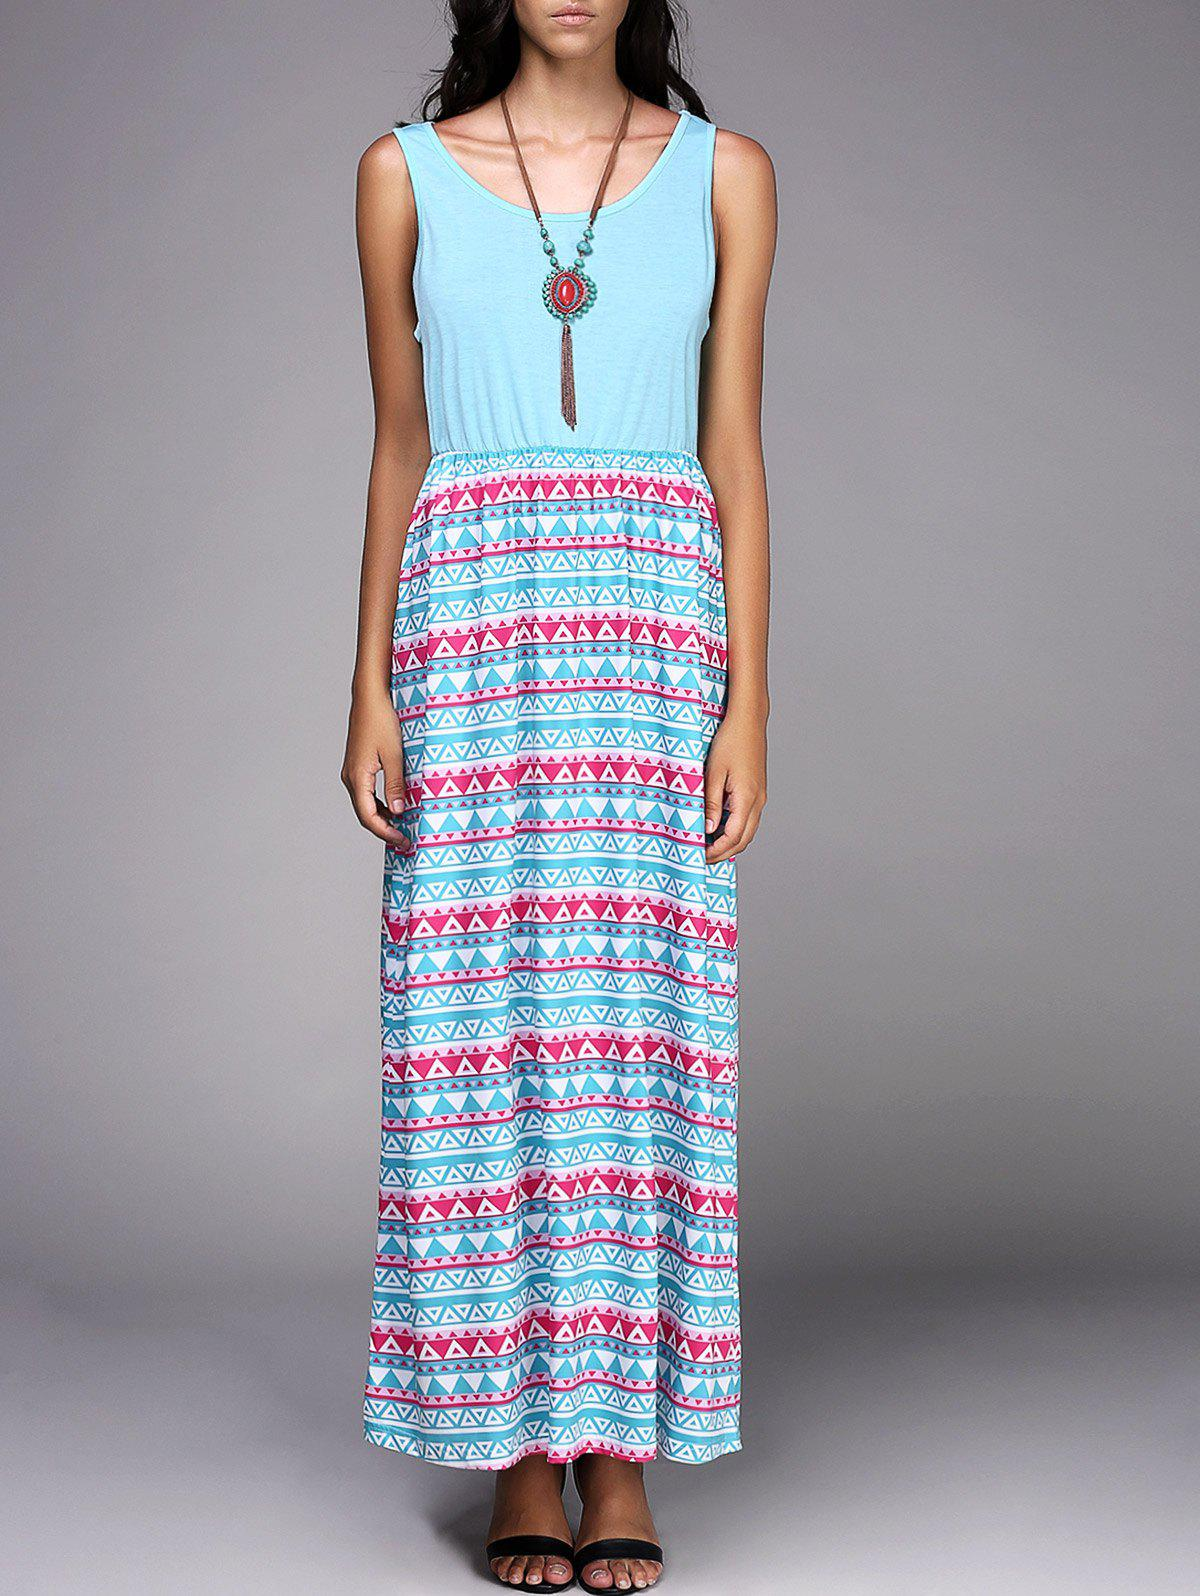 Scoop Neck Sleeveless Tribal Print Chic Spliced Women's Dress - AZURE XL